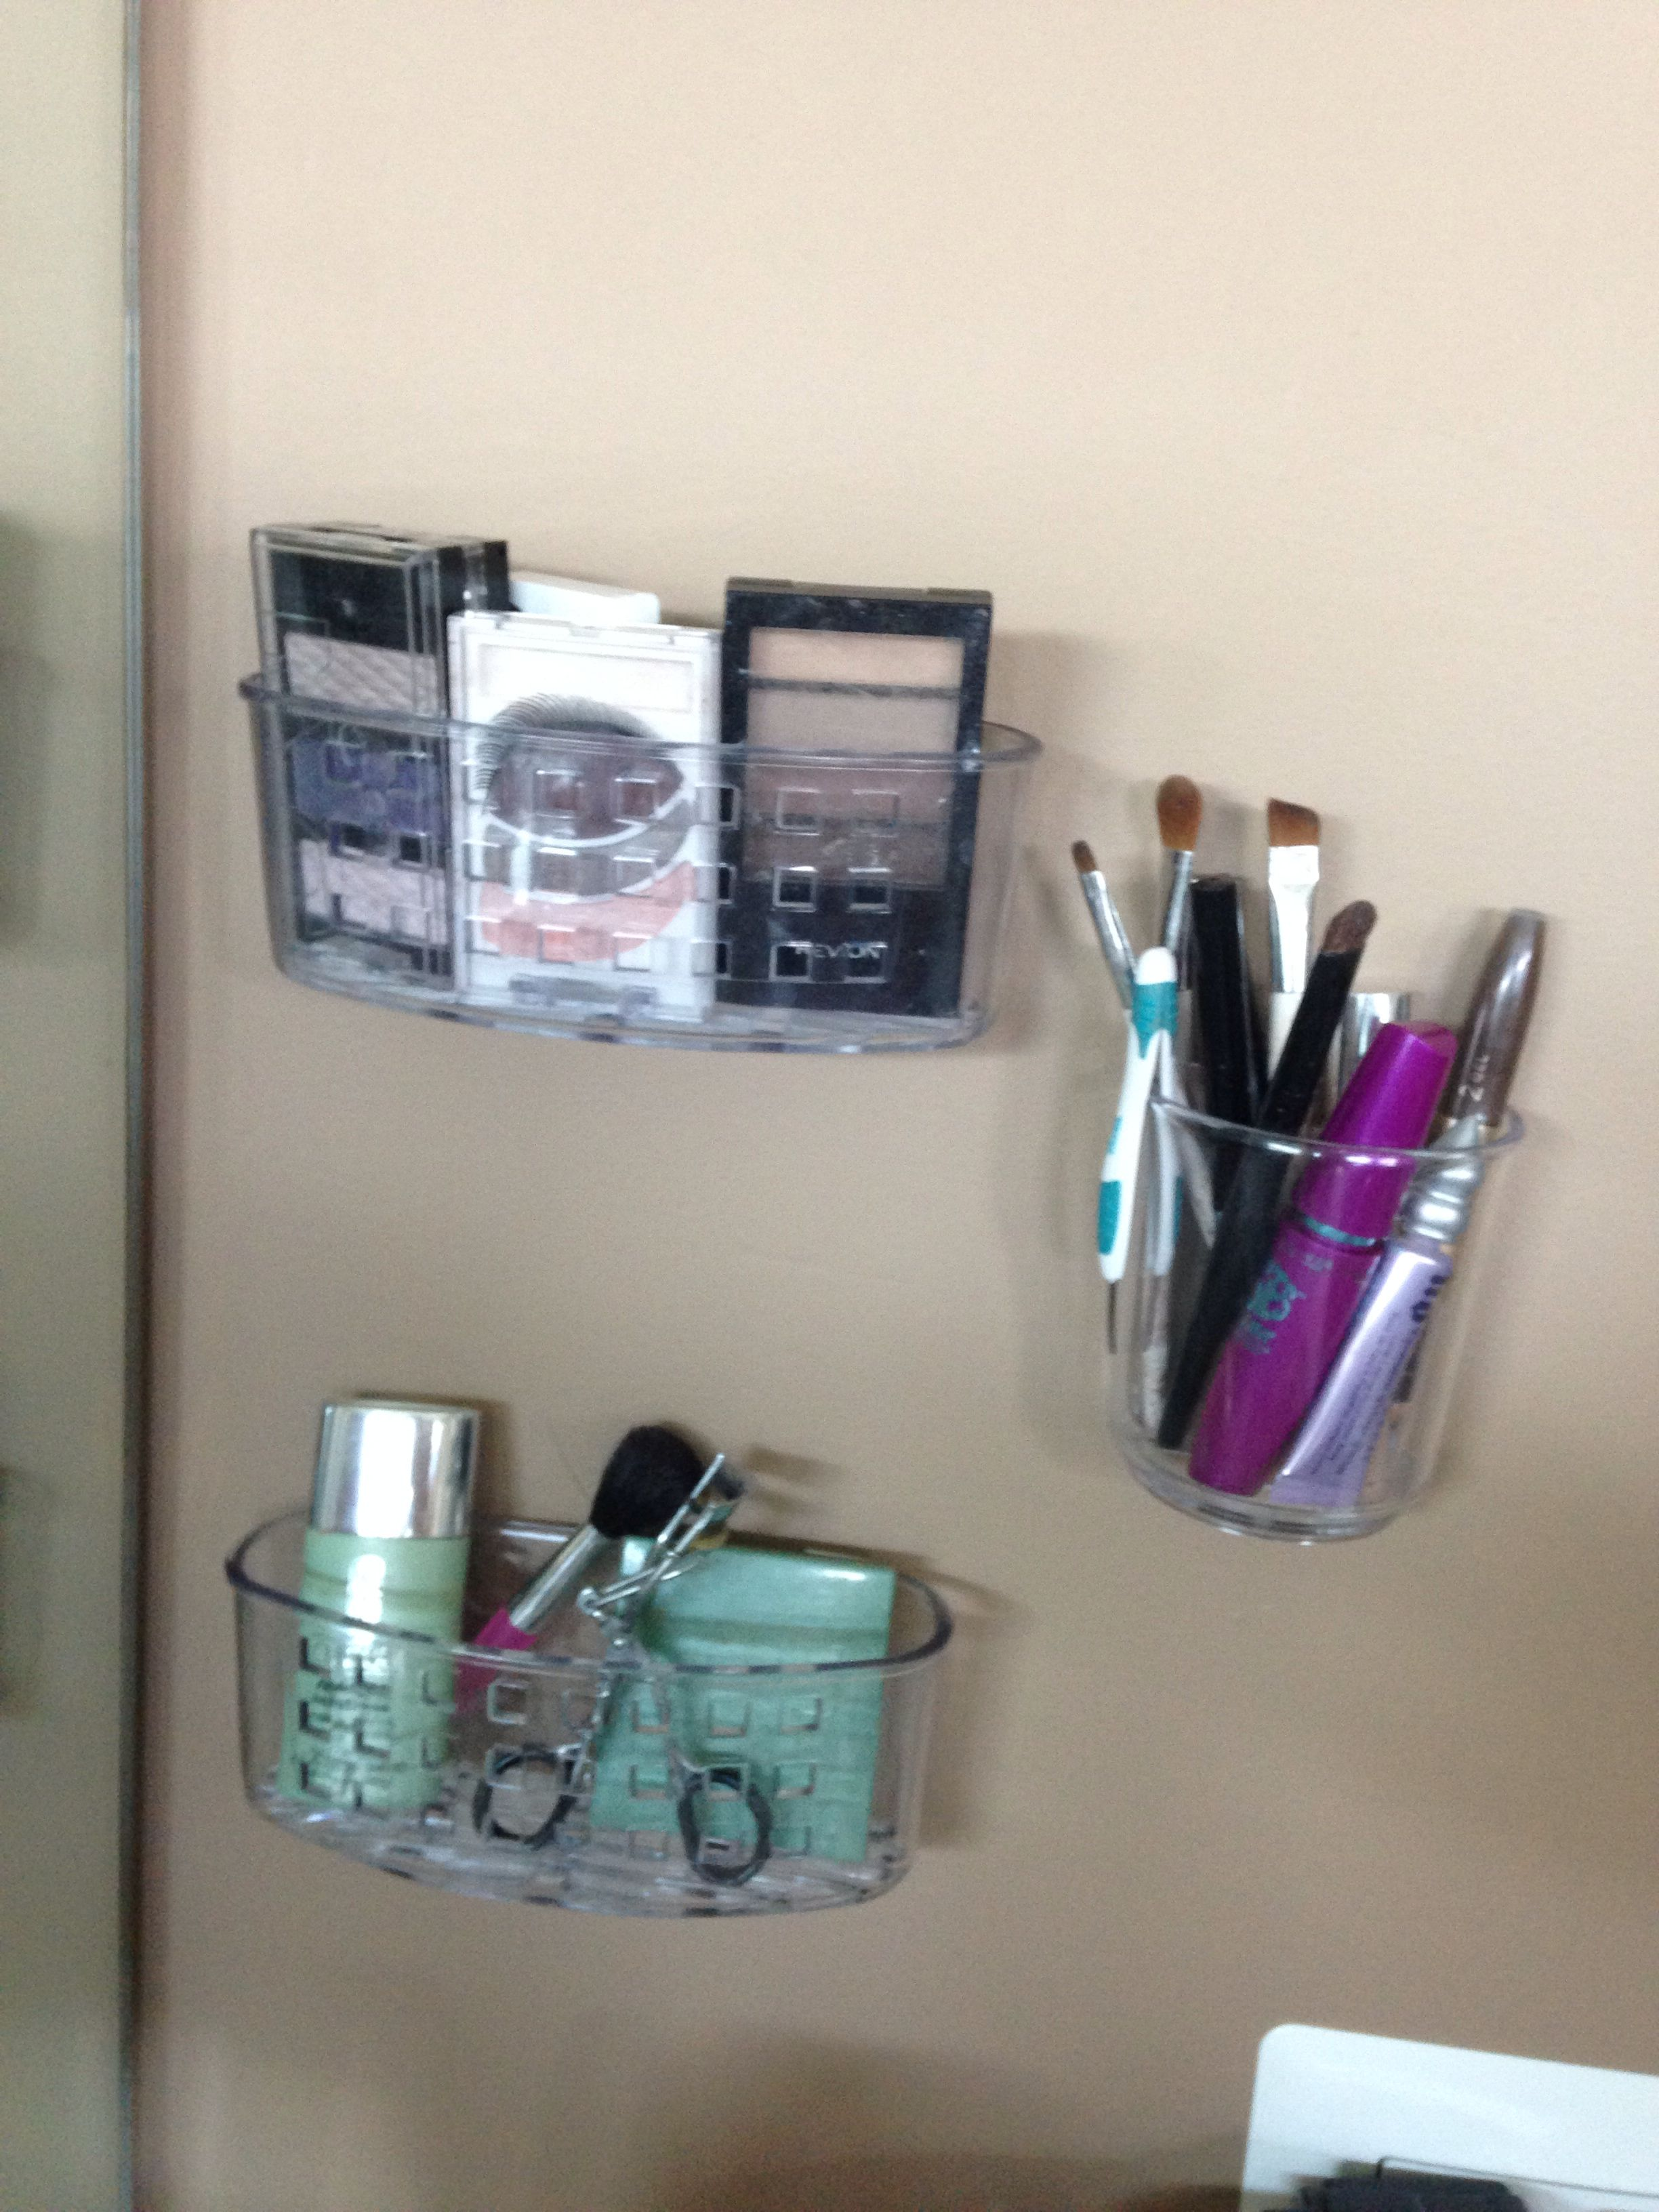 Get A Shower Caddy And Hang It On Command Hooks For Organization